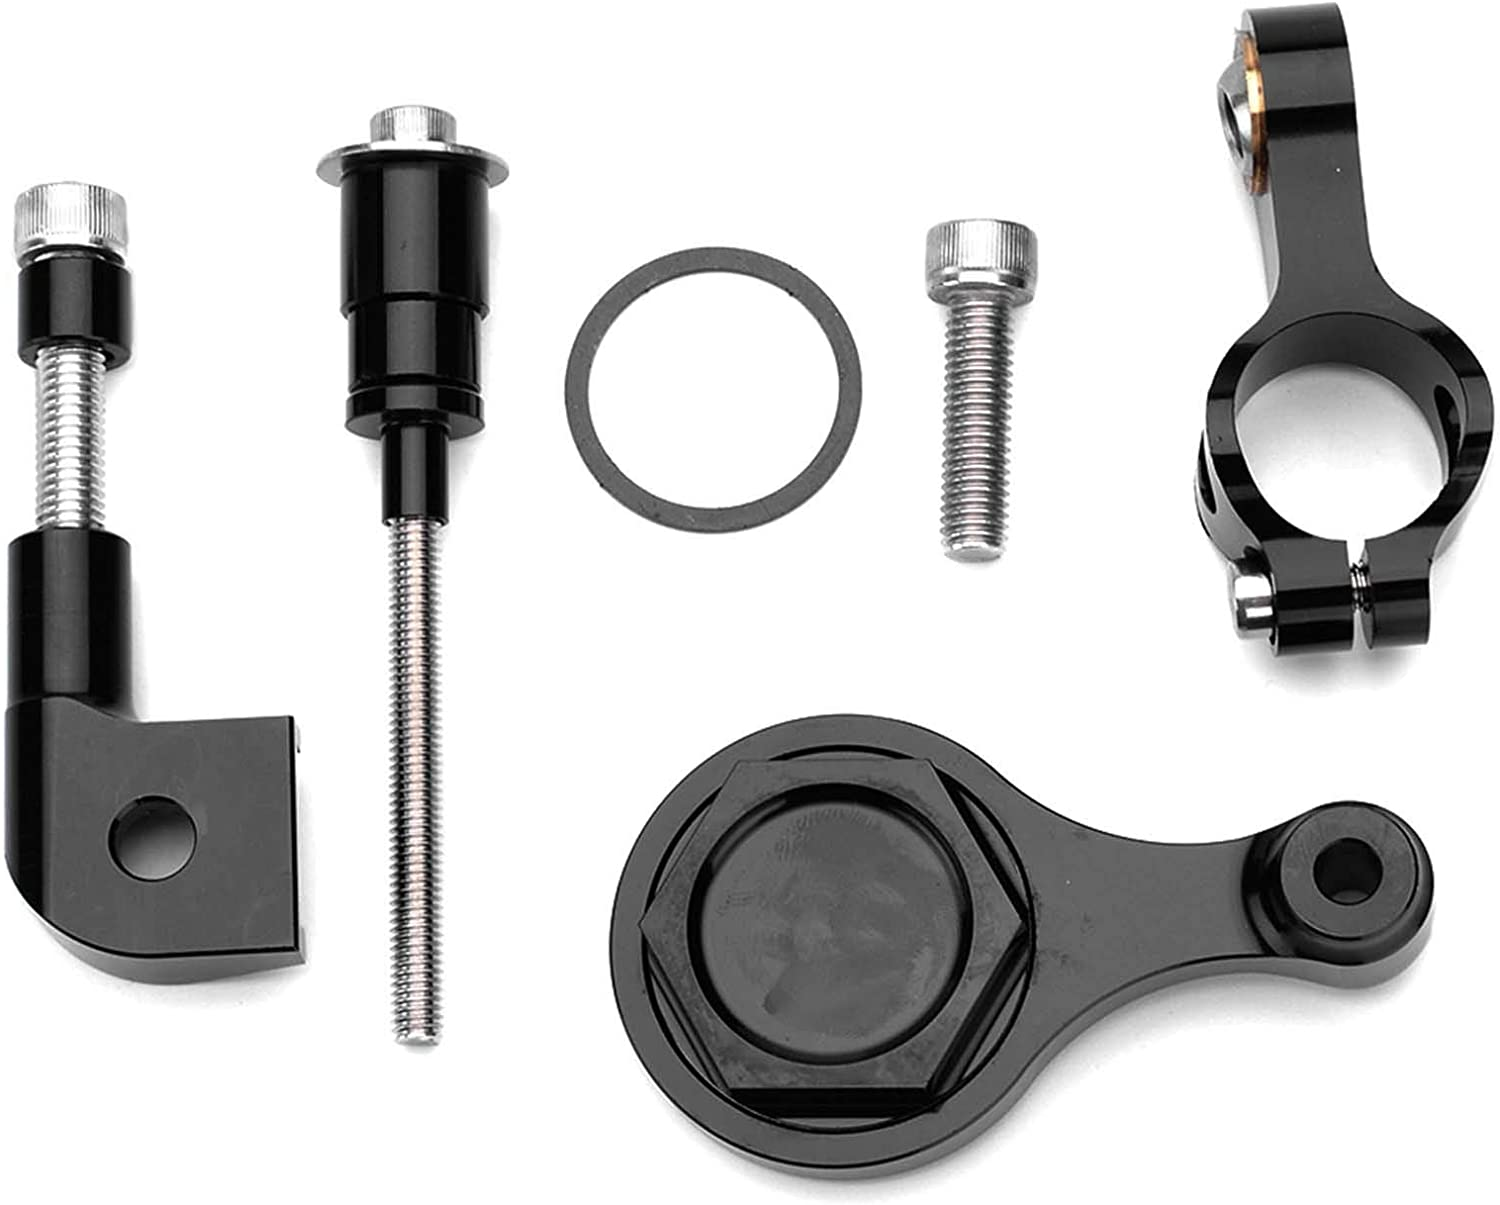 LRJBFC Max 73% OFF CNC Moto Steer Support Brand new Adjustable Steering Sta Motorcycle